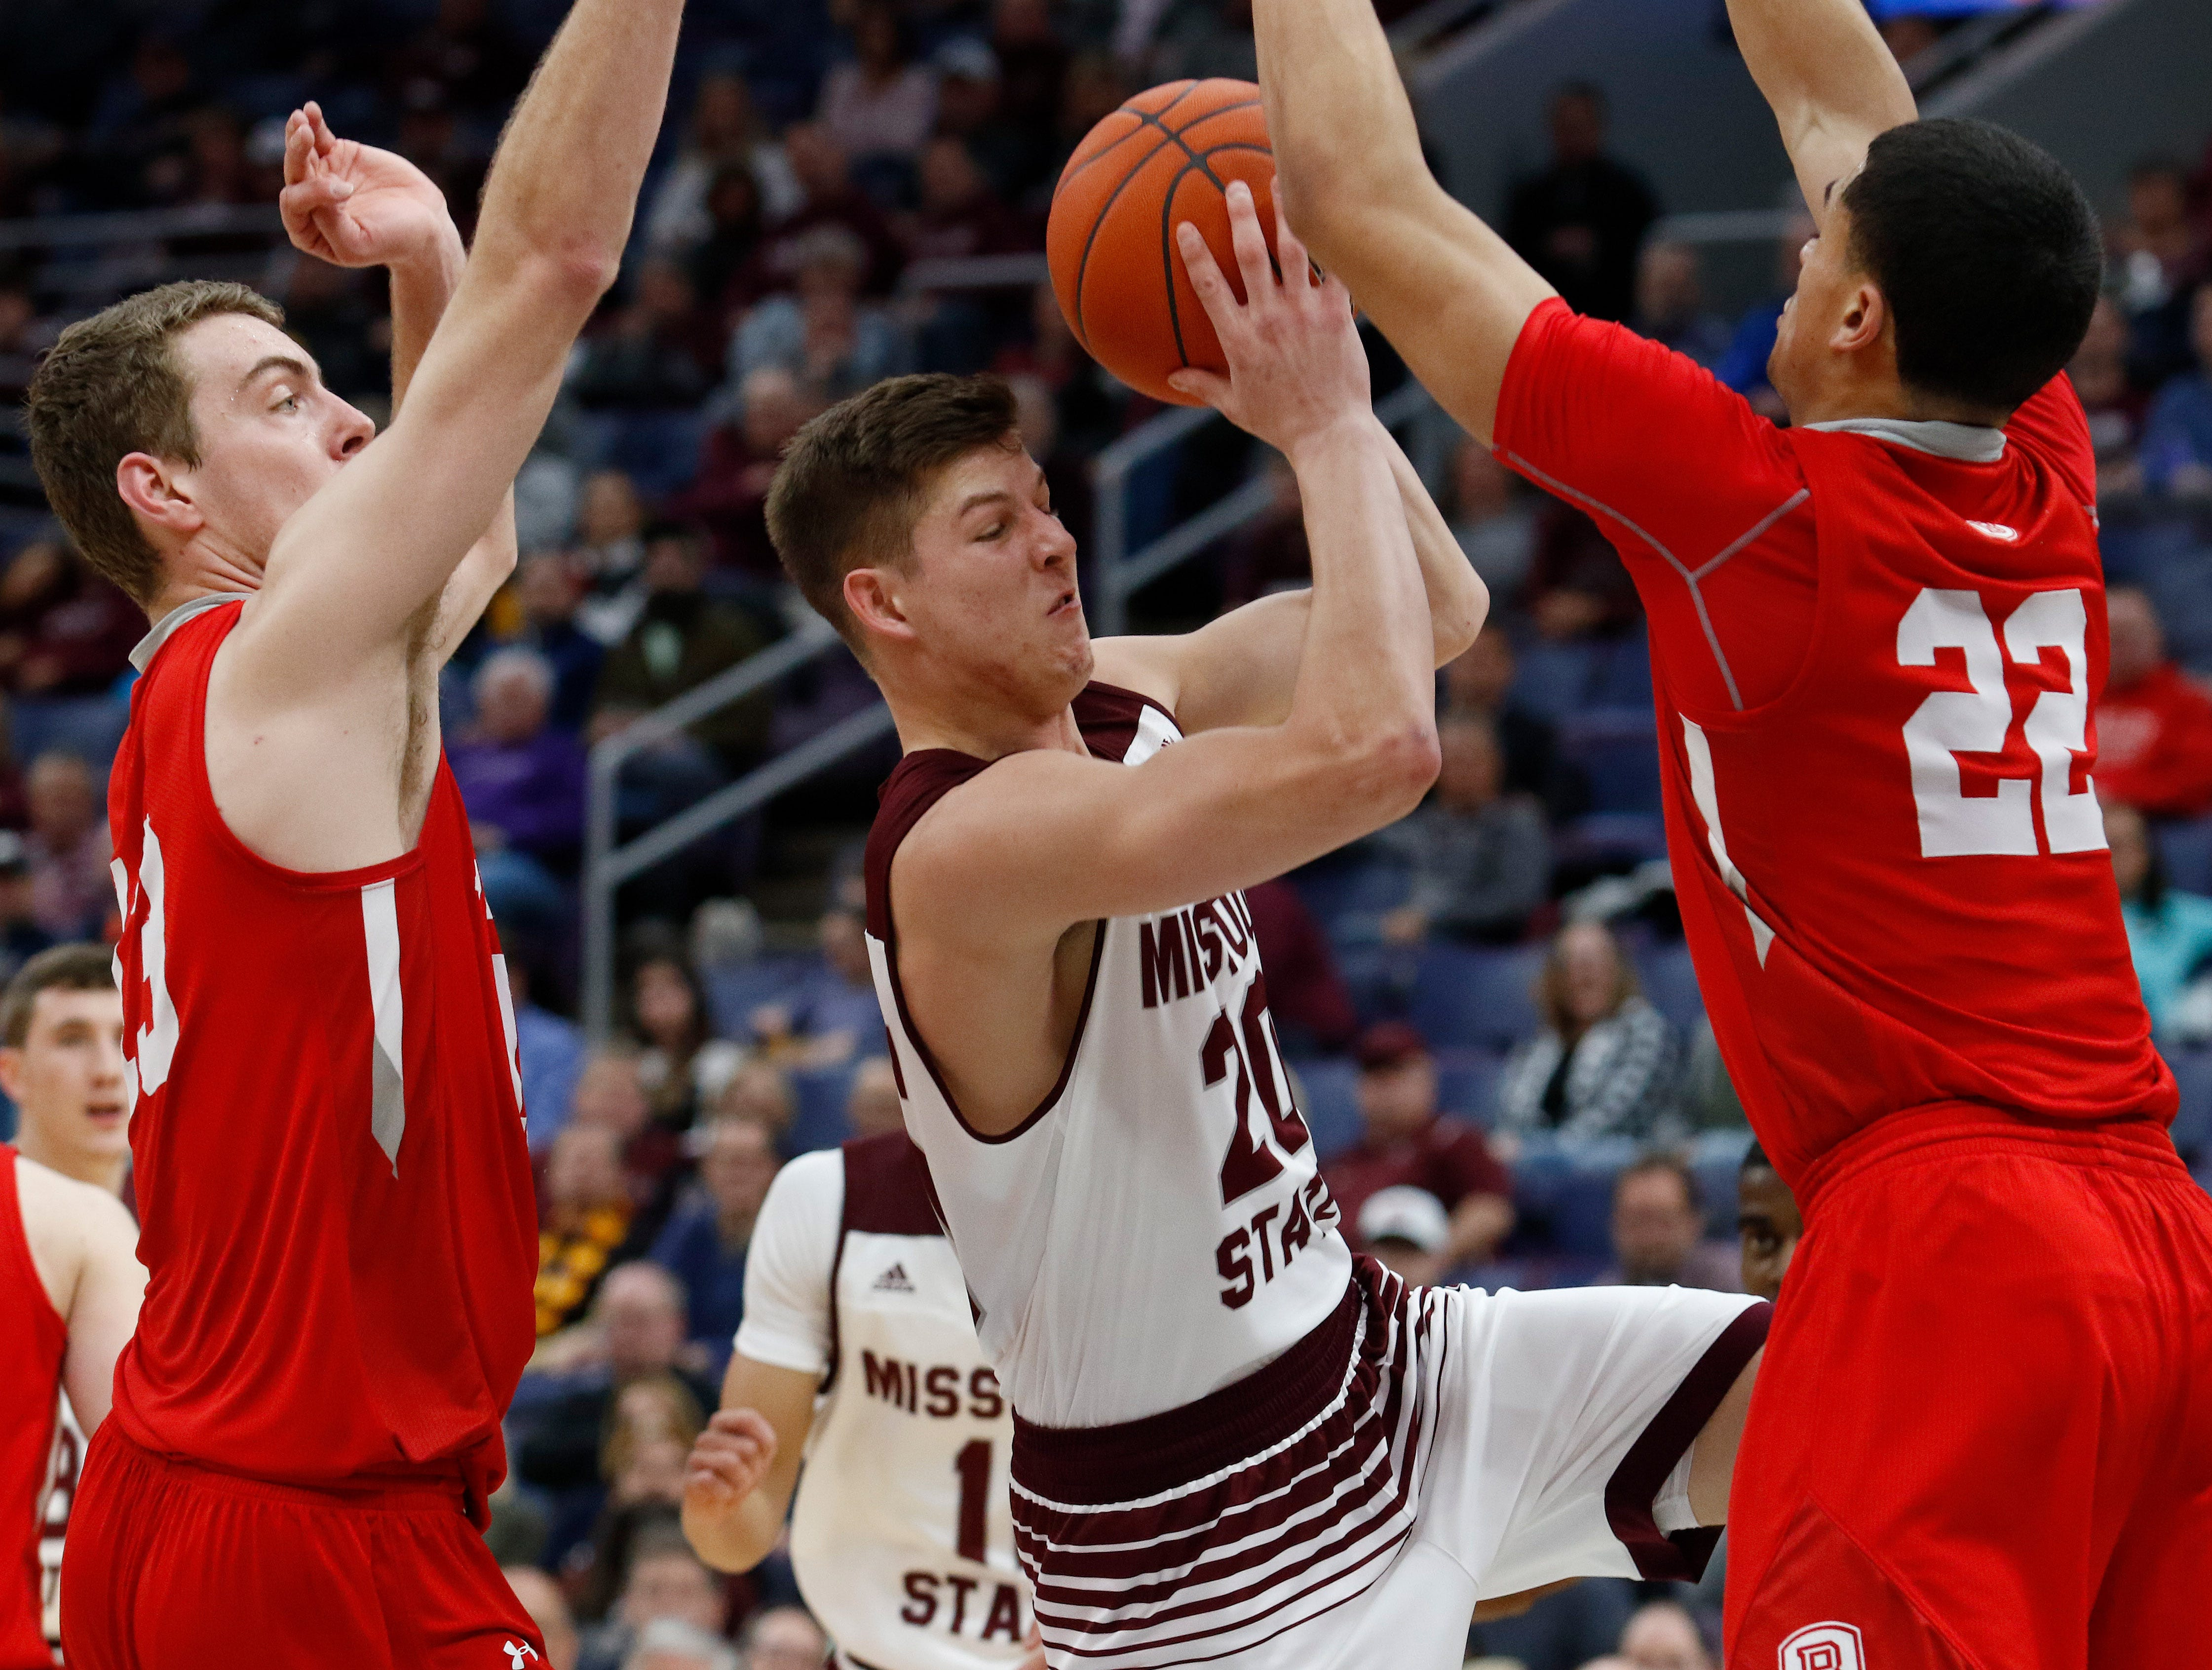 MVC Tournament action of Missouri State v. Bradley, Friday, March 8, 2019, at the Enterprise Center in St. Louis. Michael Gulledge/For the News-Leader